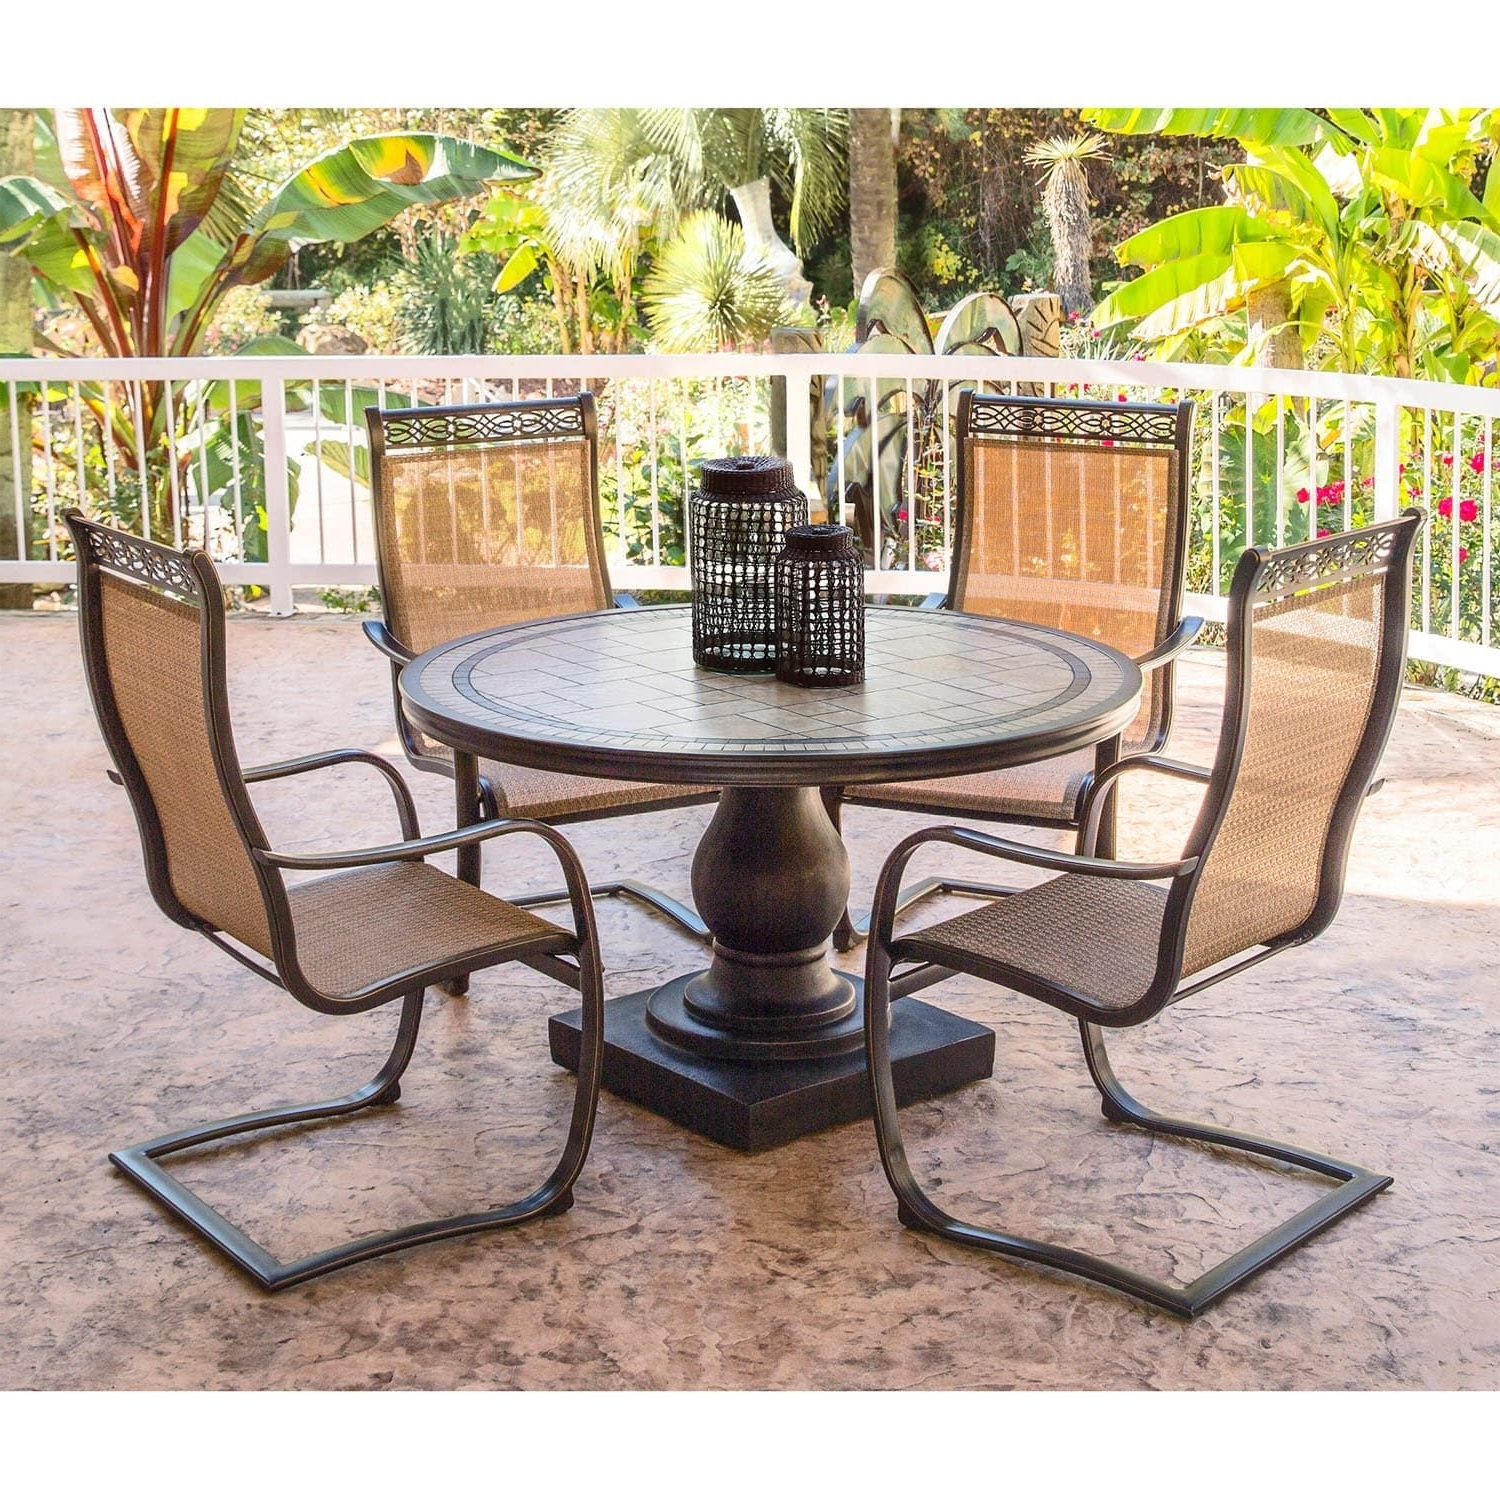 Monaco Dining Sets Inside Popular Hanover Monaco Golden Bronze Aluminum 5 Piece Outdoor Dining Set (View 8 of 25)